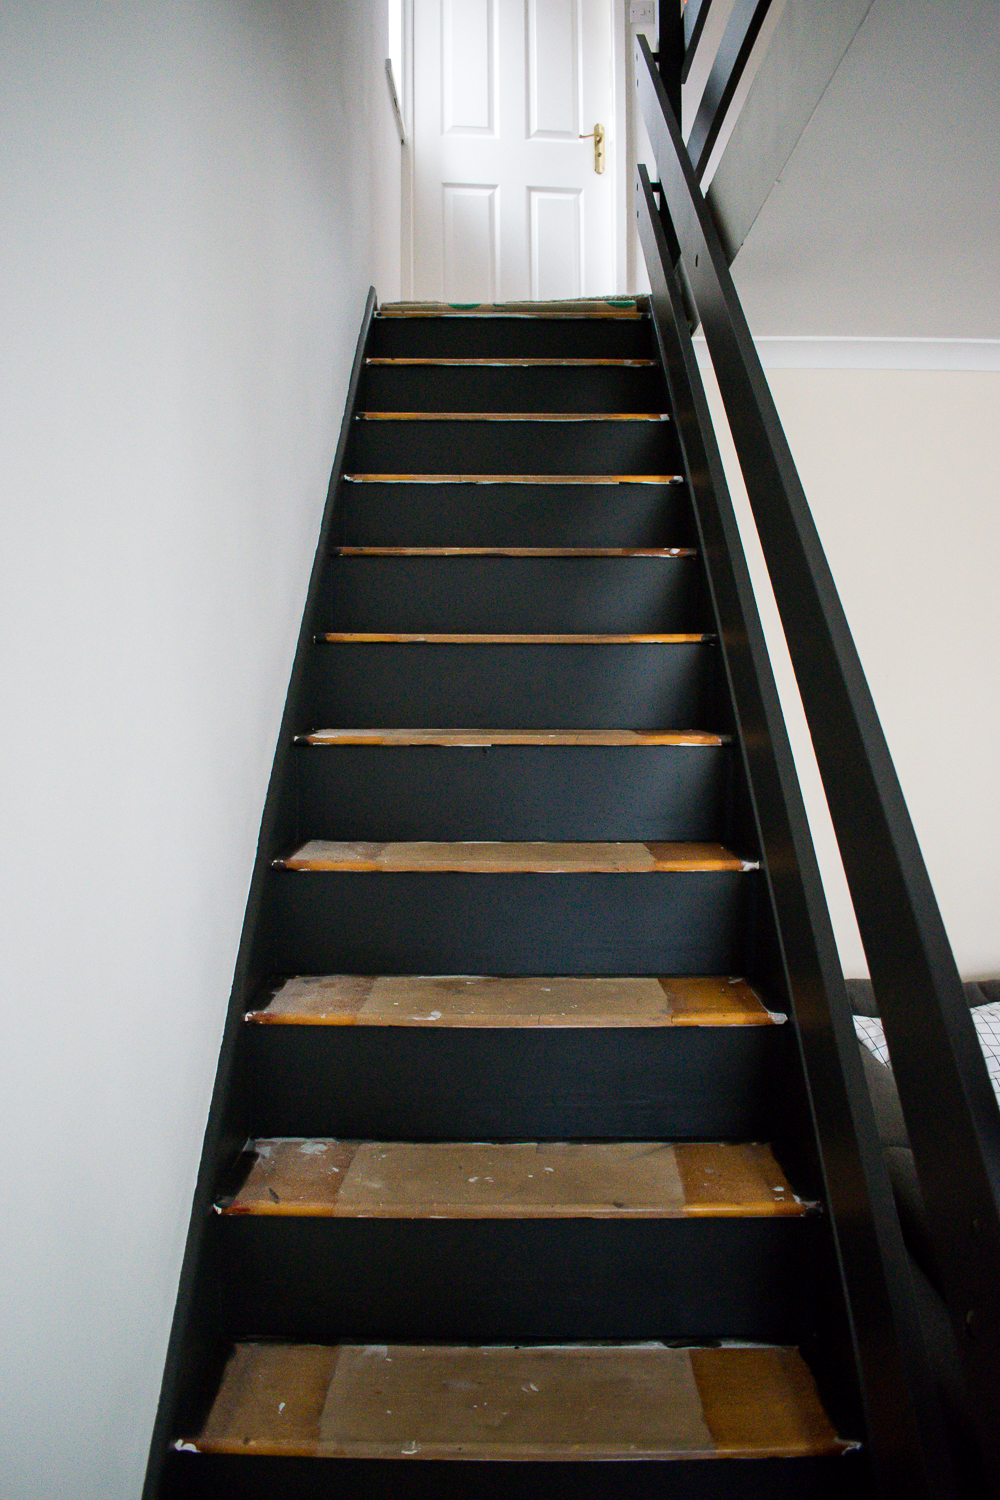 Painted risers in black with wooden treads